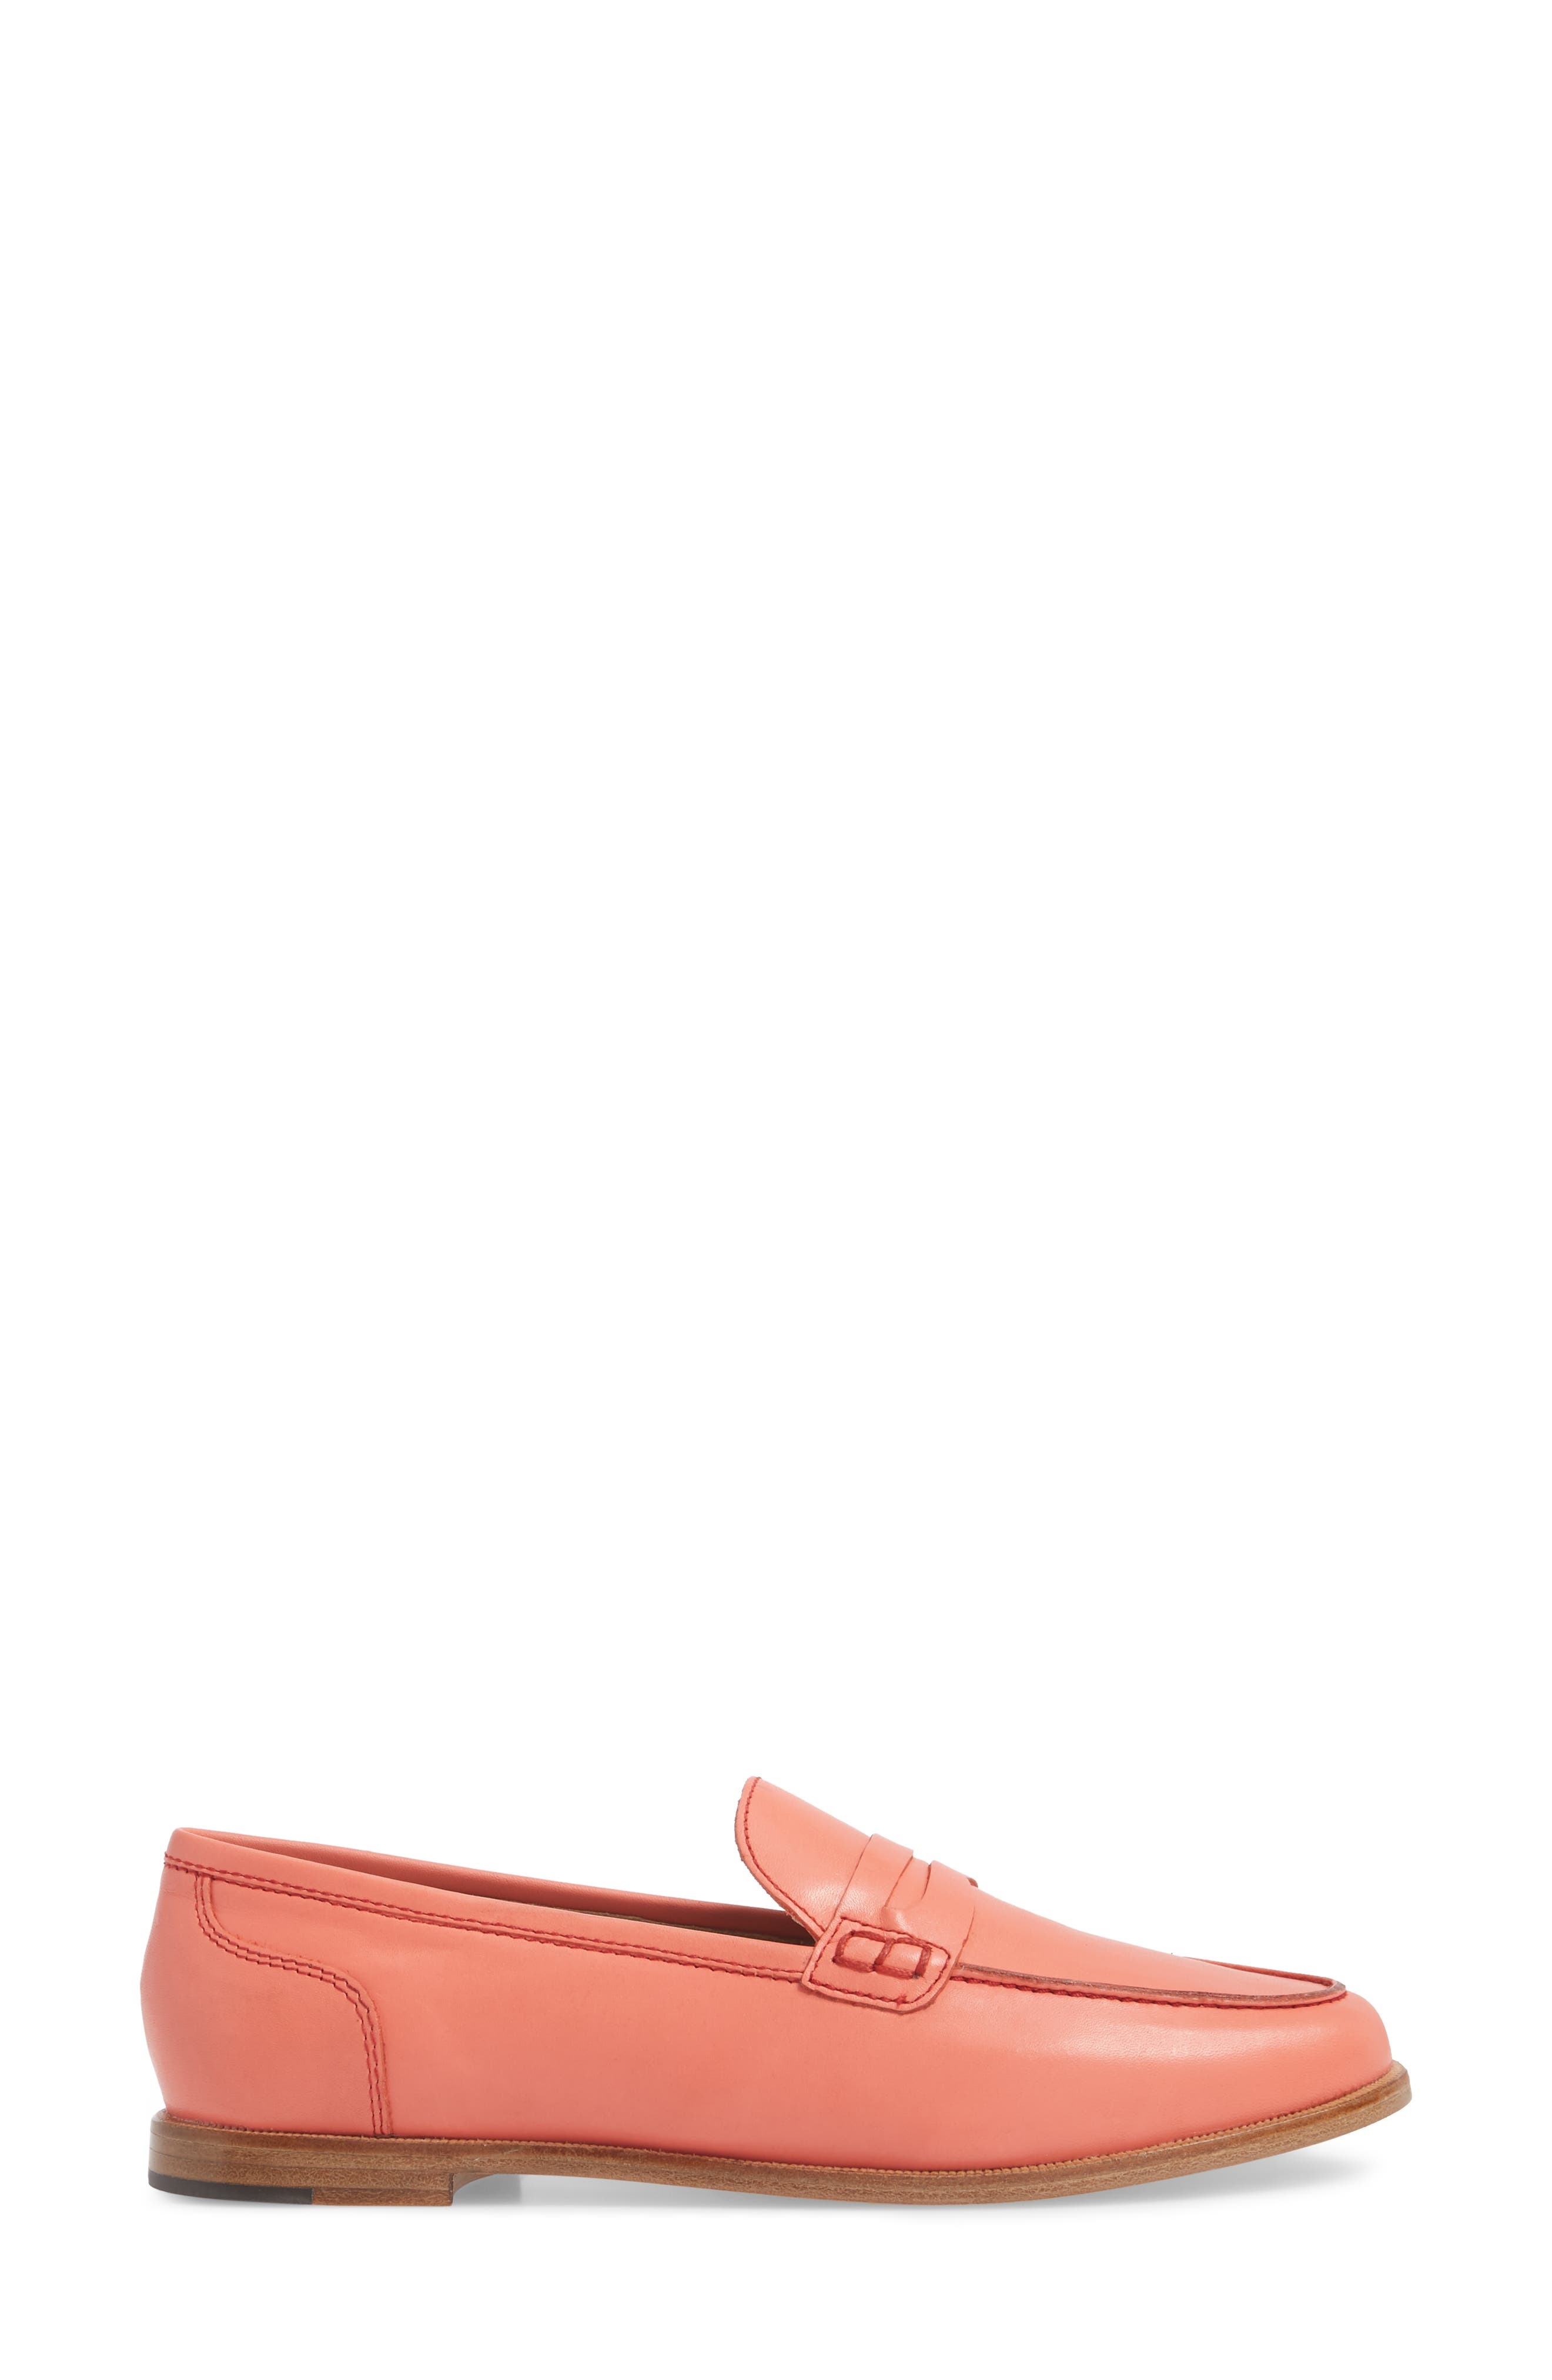 Ryan Penny Loafer,                             Alternate thumbnail 3, color,                             RUST LEATHER